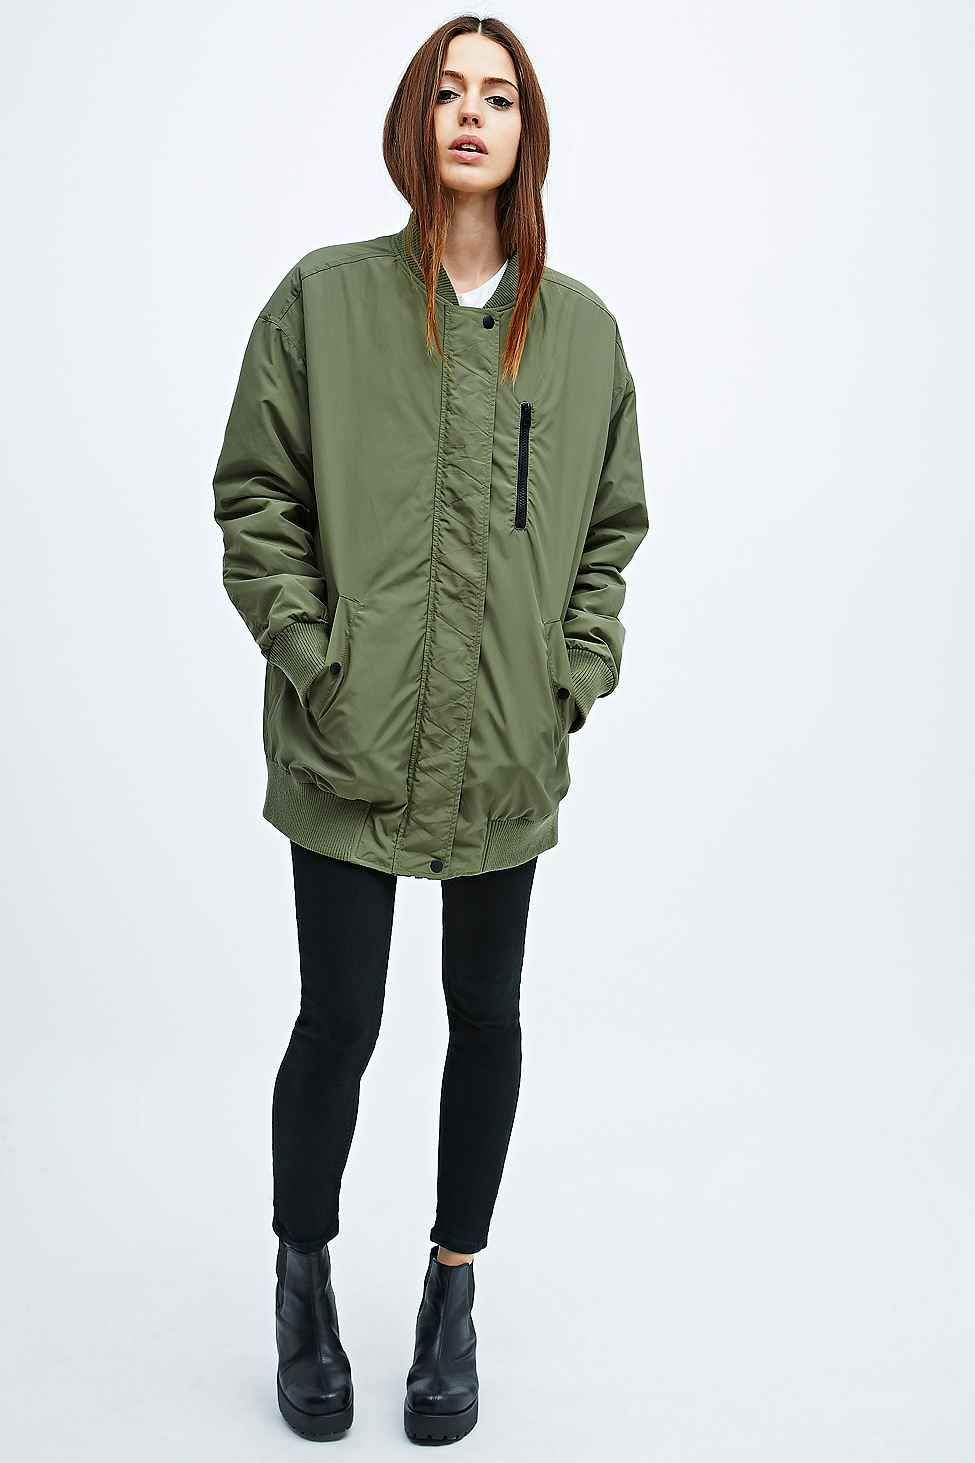 Image 4 of ASOS Longline Bomber Jacket | Clothing | Pinterest